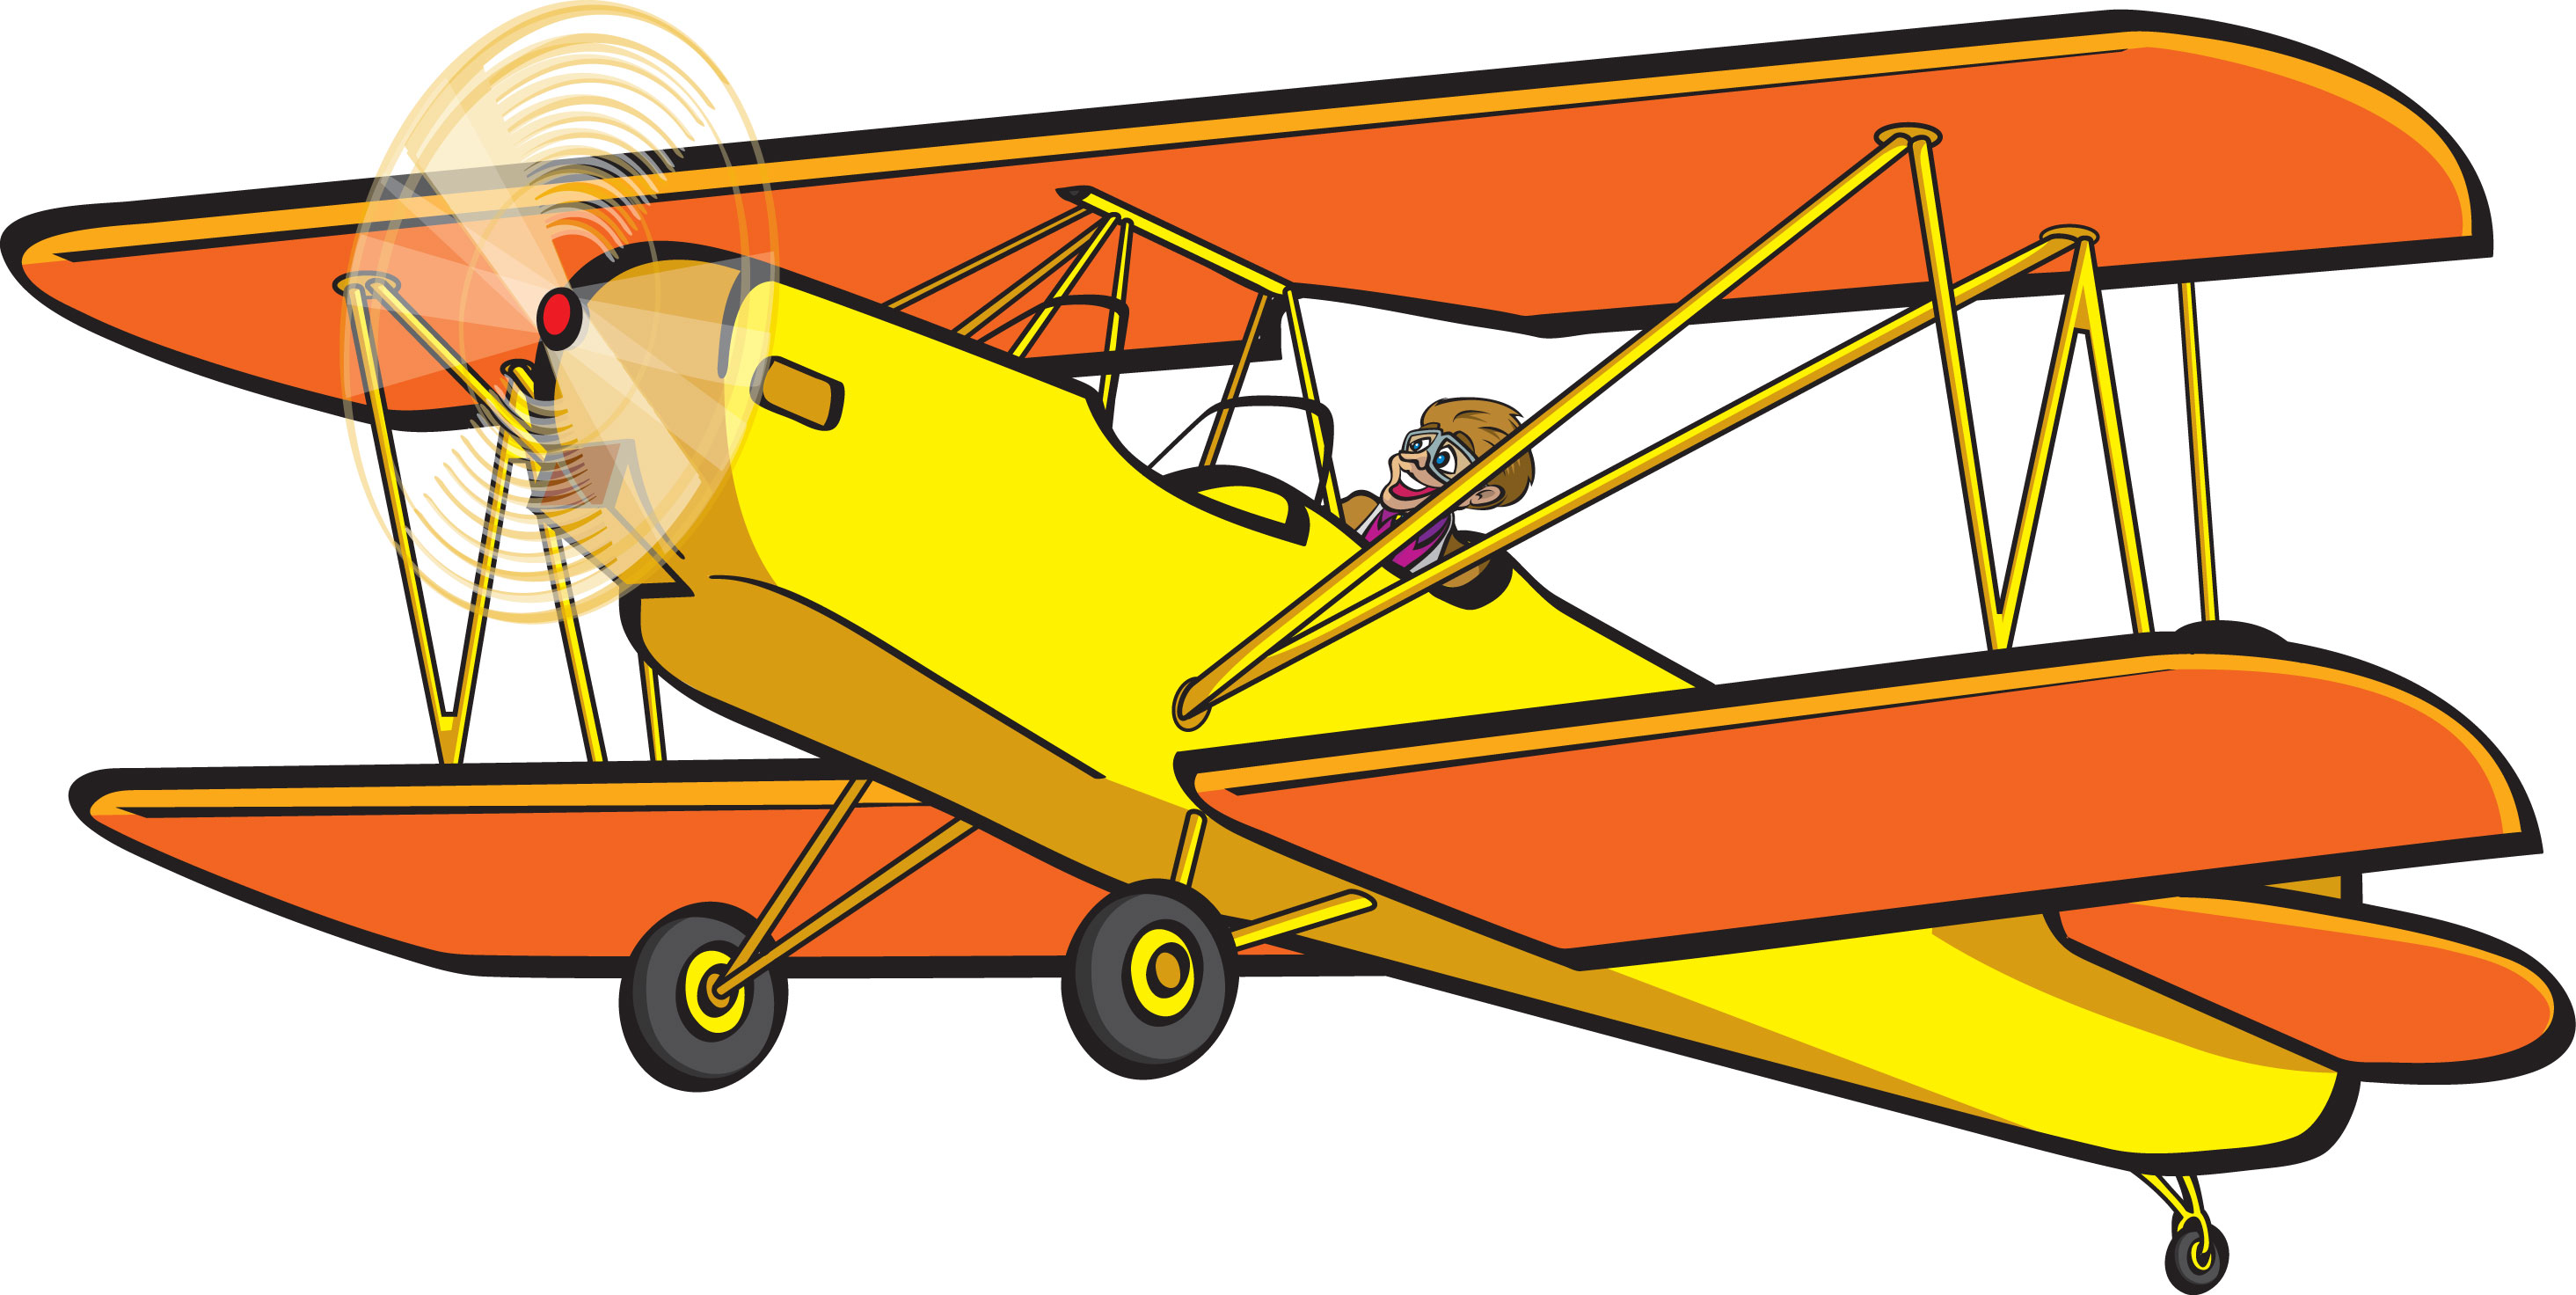 Biplane clipart yellow airplane. Silhouette at getdrawings com